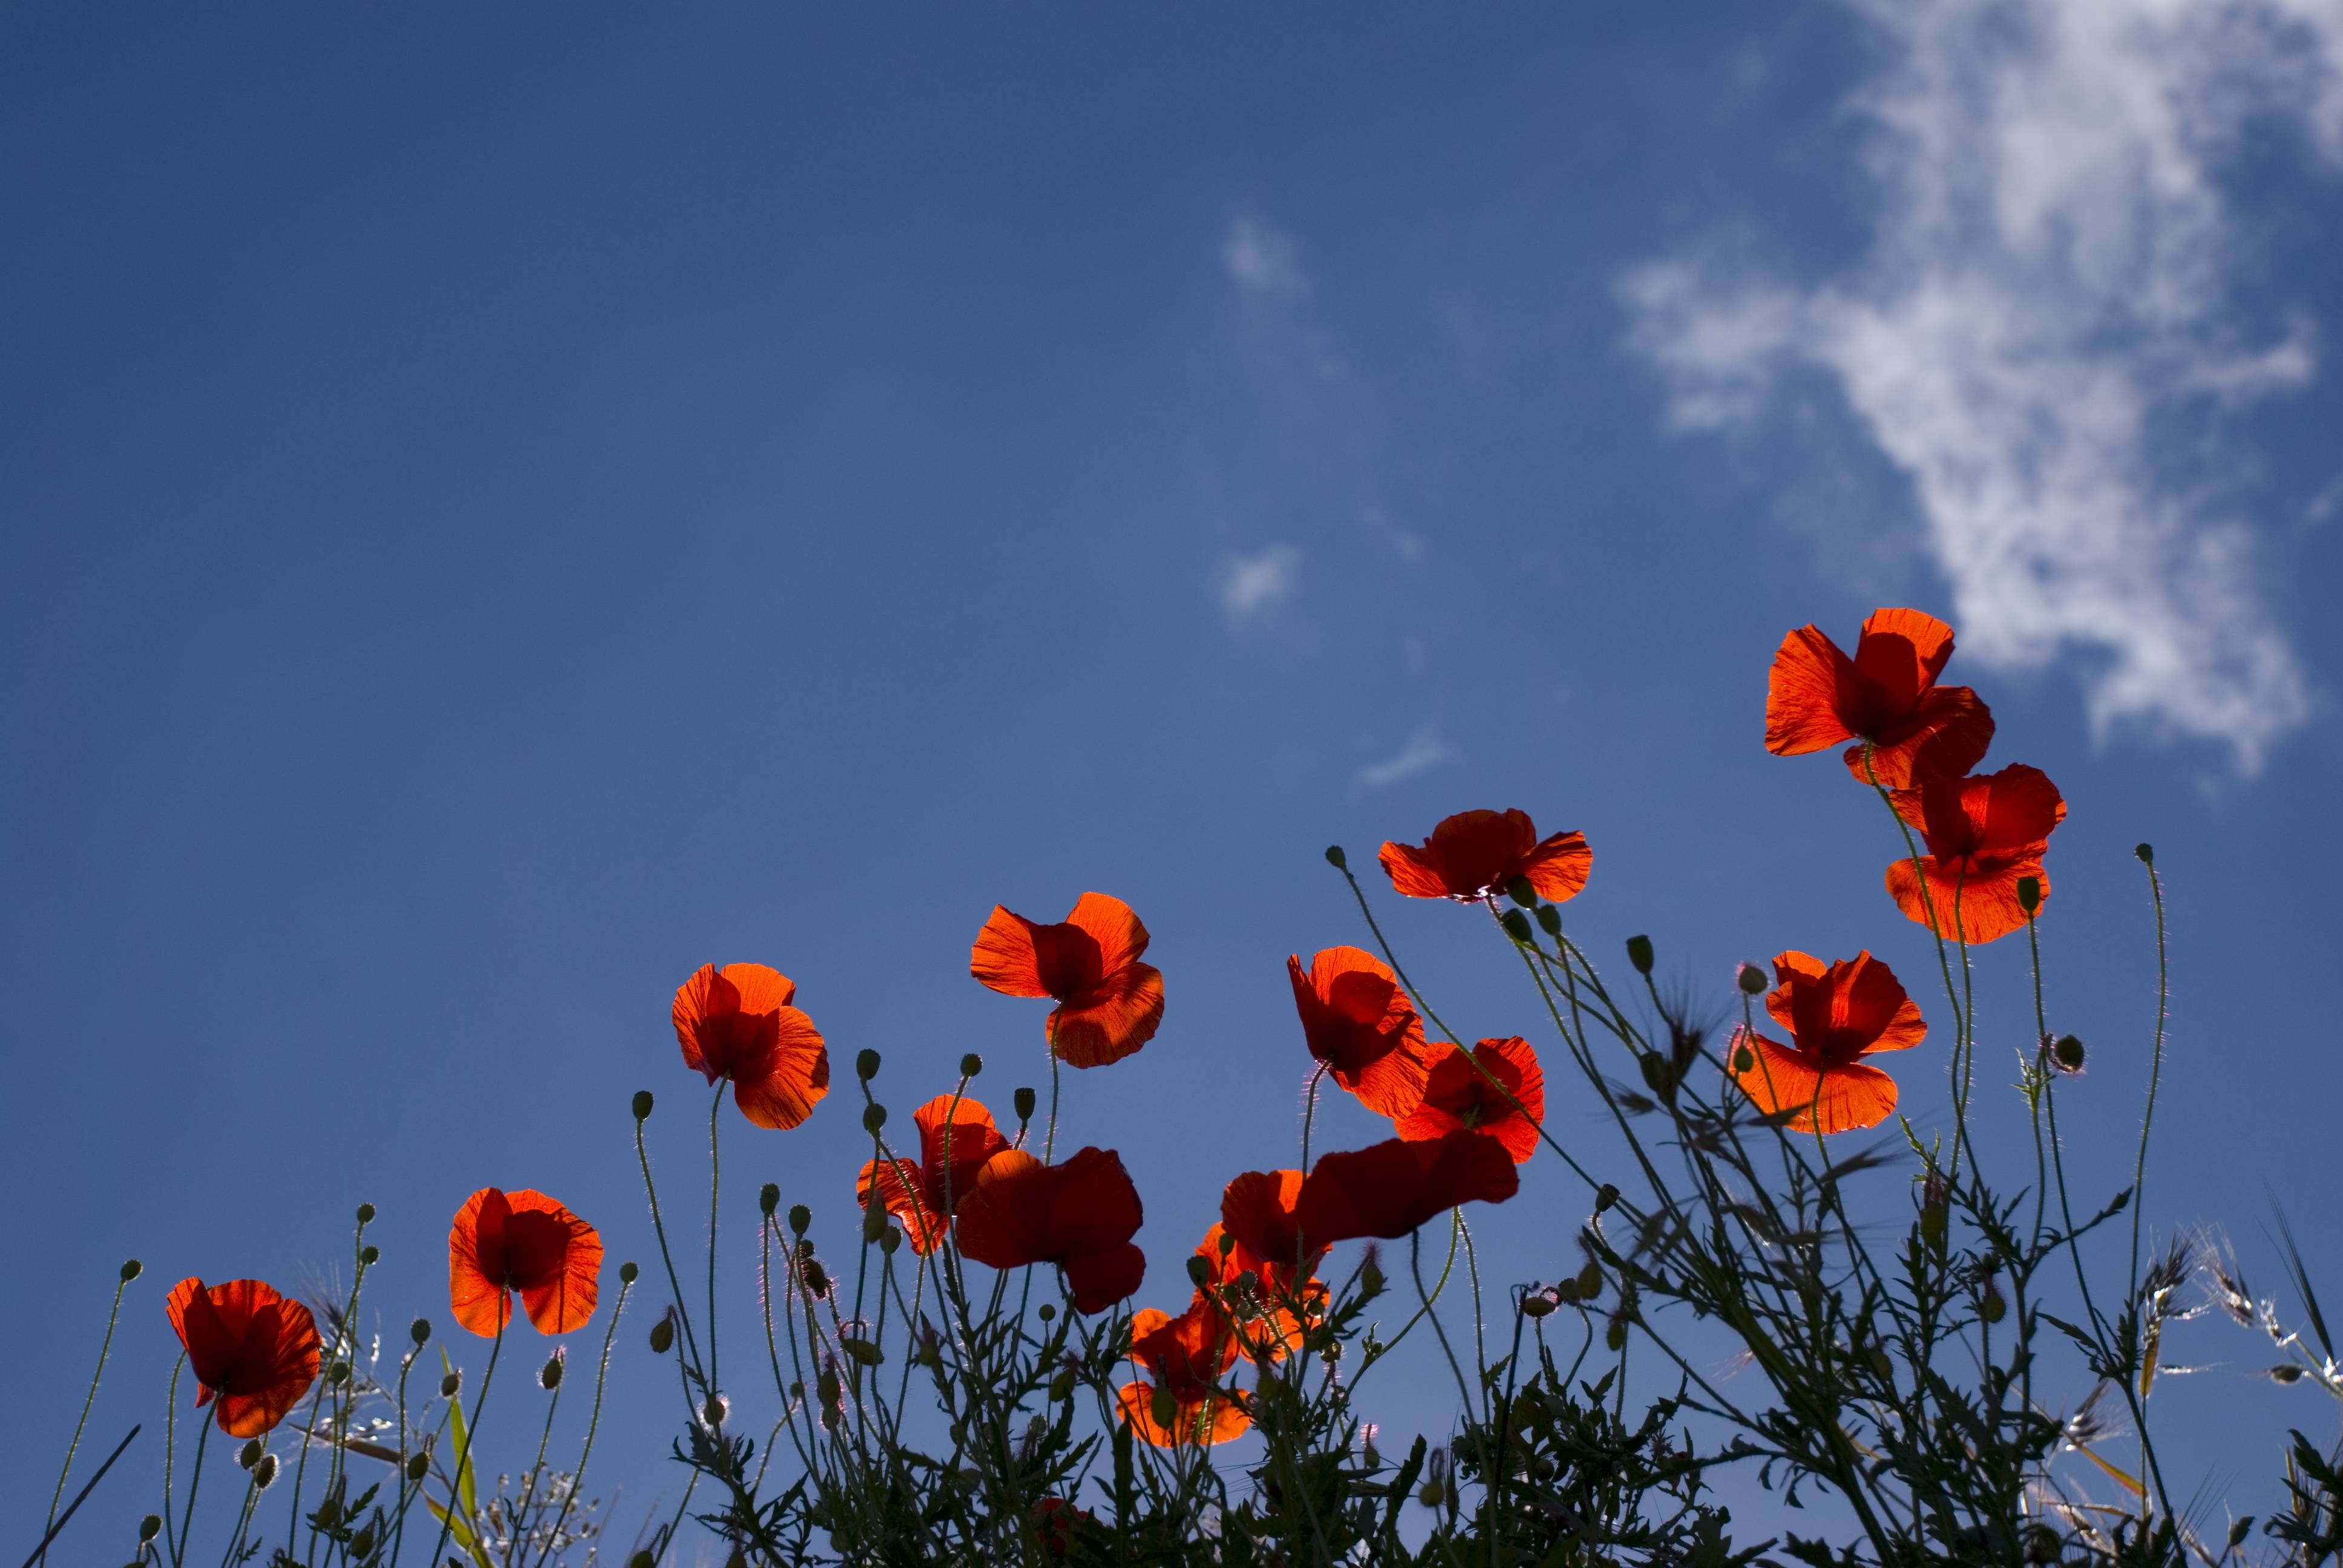 Geography Hd Wallpaper Remembrance Day Wallpapers Wallpaper Cave